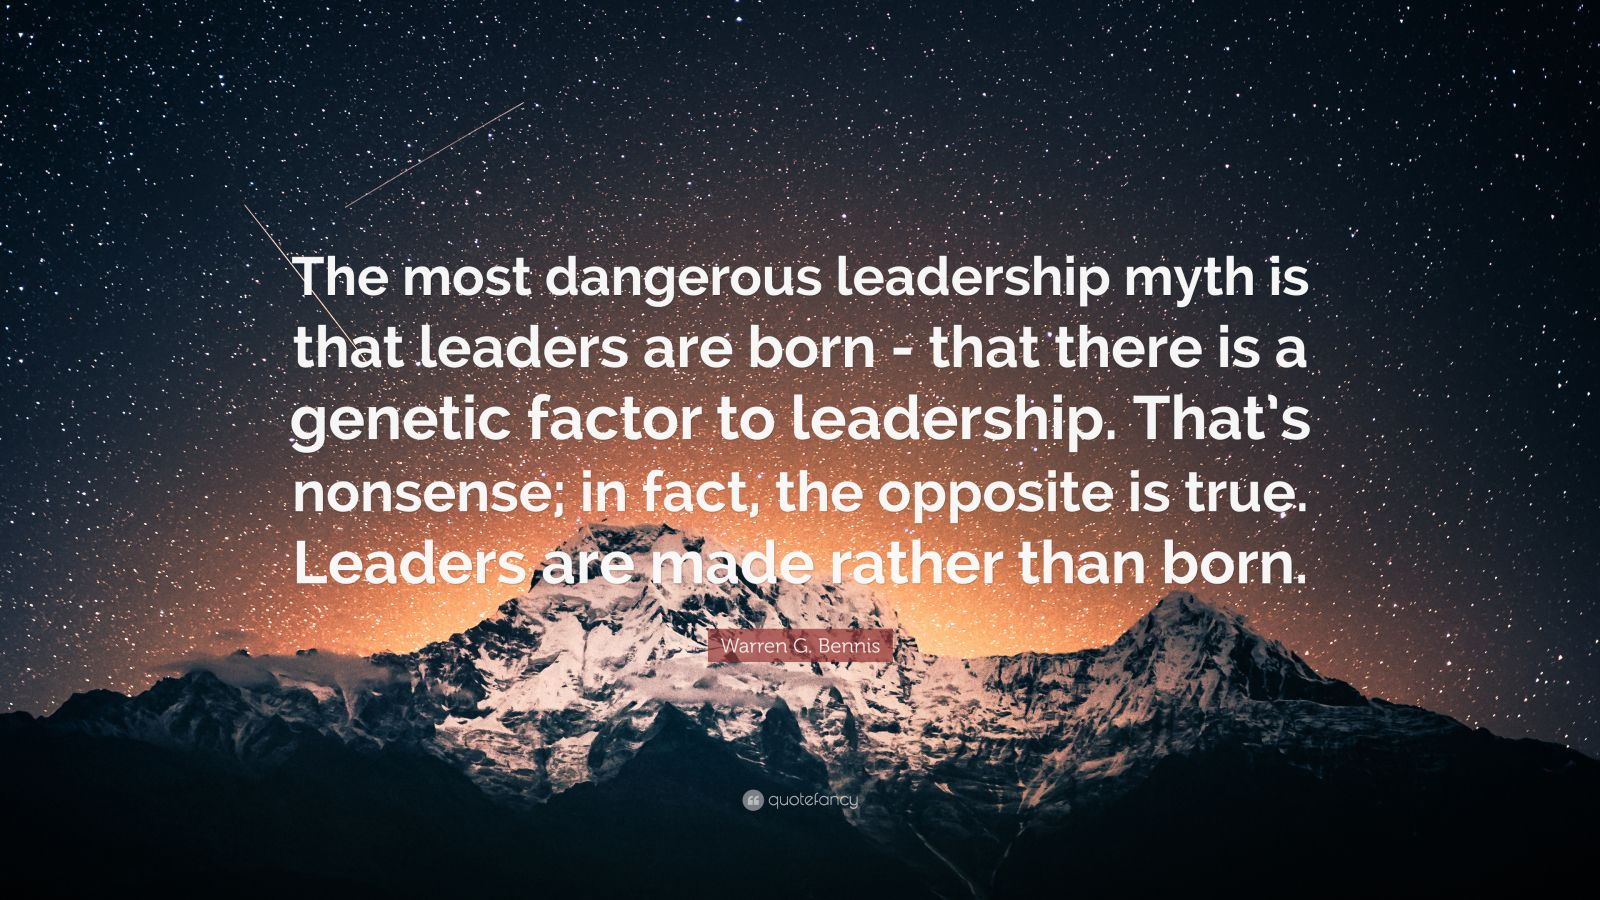 """Warren G. Bennis Quote: """"The most dangerous leadership myth is that leaders are born - that there is a genetic factor to leadership. That's nonsense; in fact, the opposite is true. Leaders are made rather than born."""""""